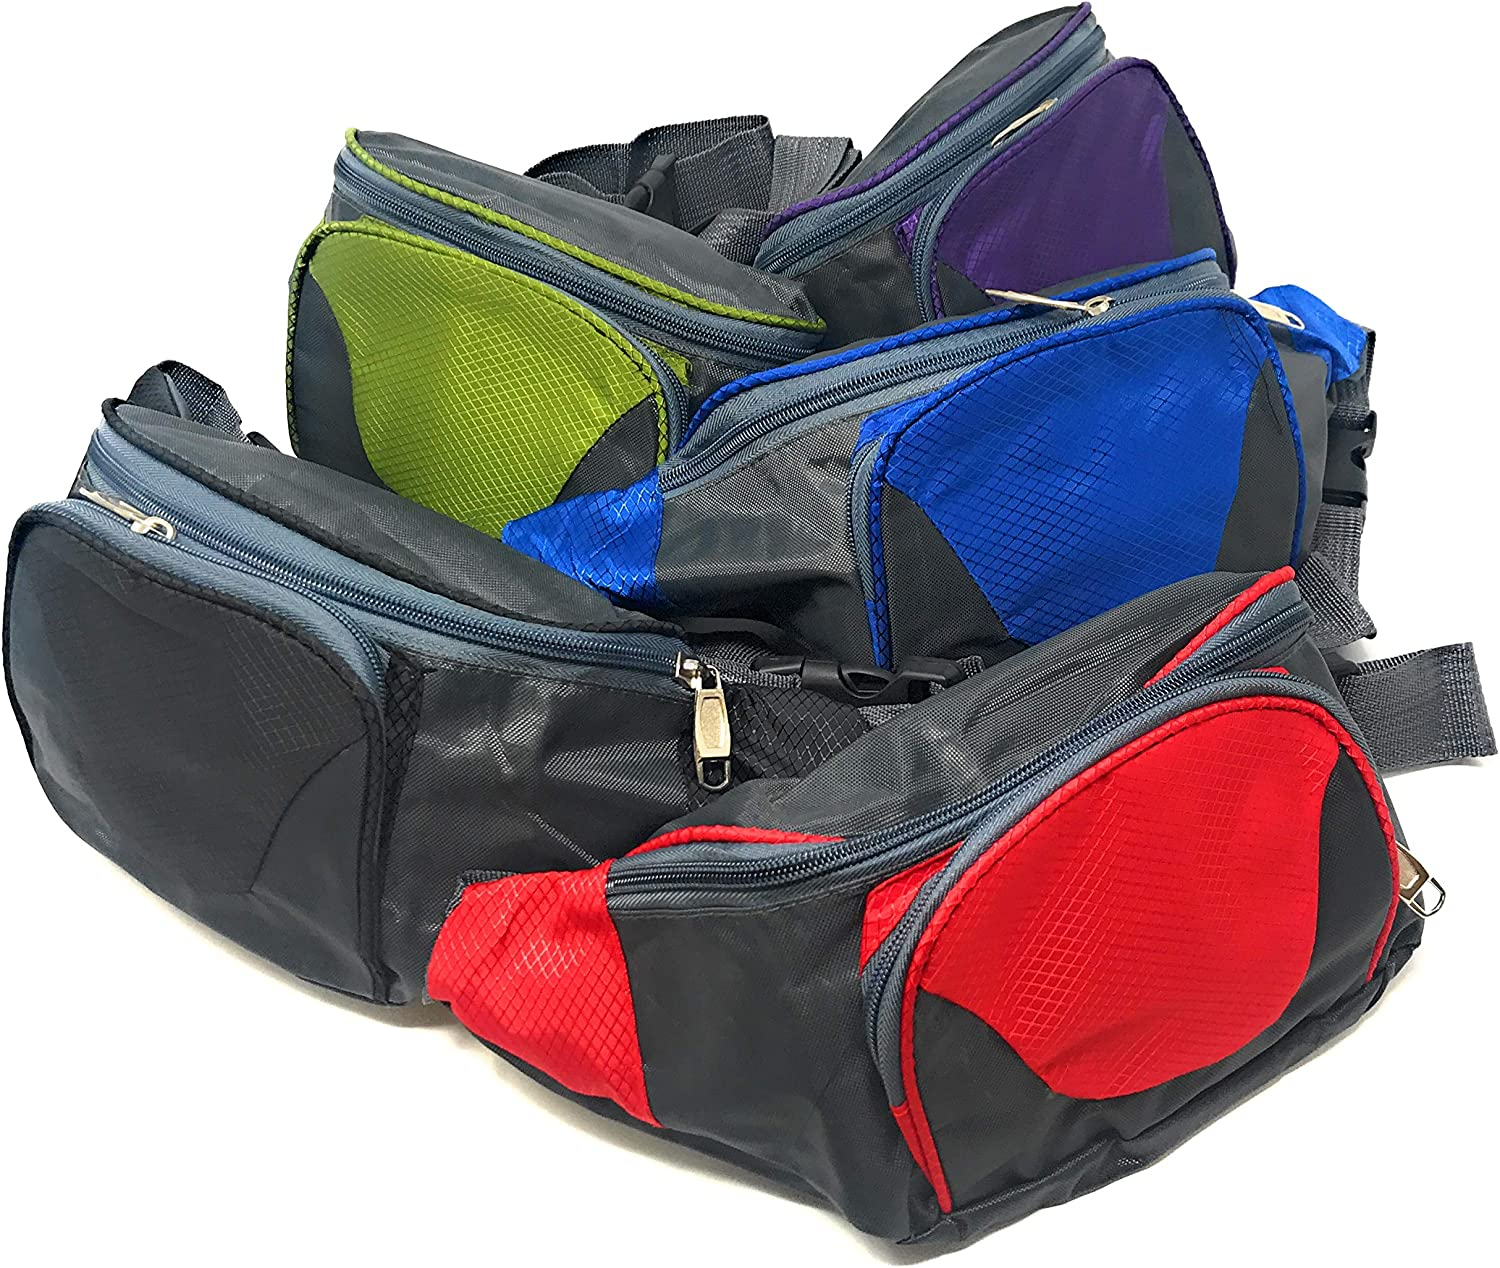 Bulk 5 Piece Travel and Hiking Fanny Pack Assortment